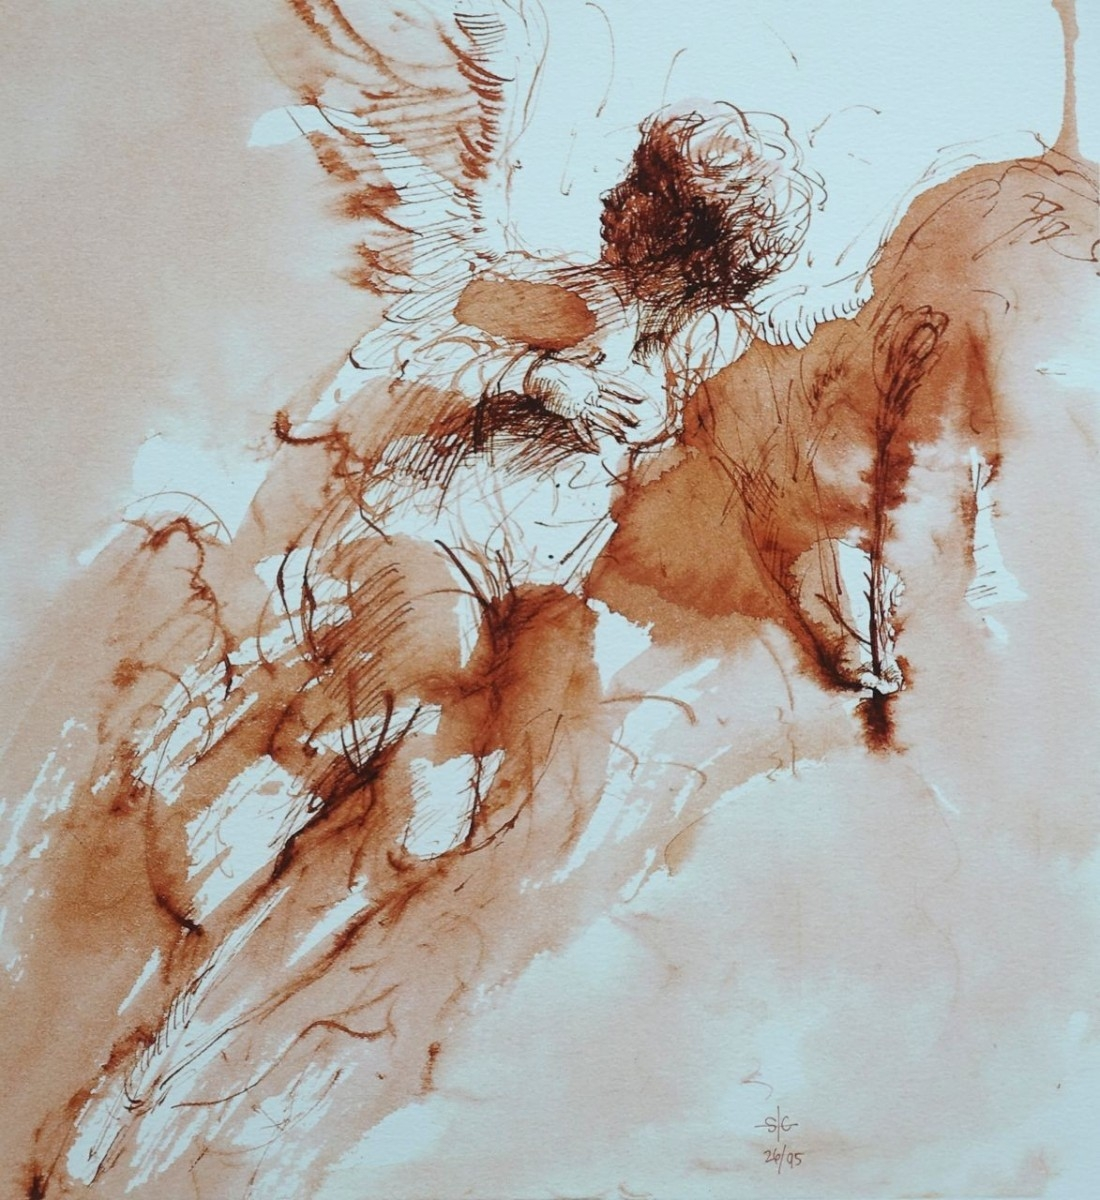 Stephanie_Goldman_Angel_of_The-Annunciation_Ink_Watercolor_14x11